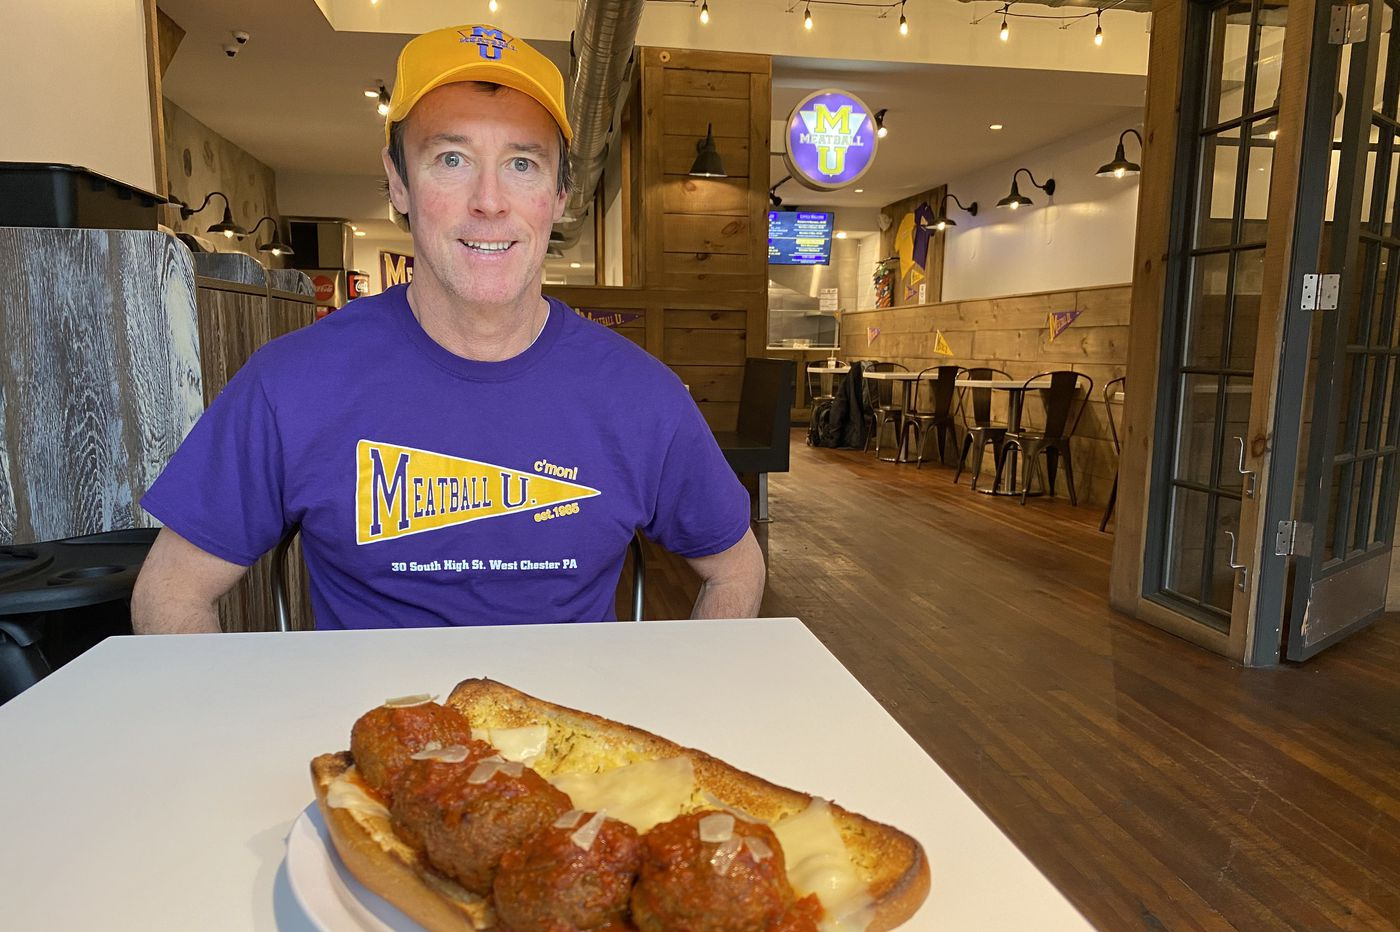 At Meatball U in West Chester, they're kickin' it bold school with their sandwiches and pasta